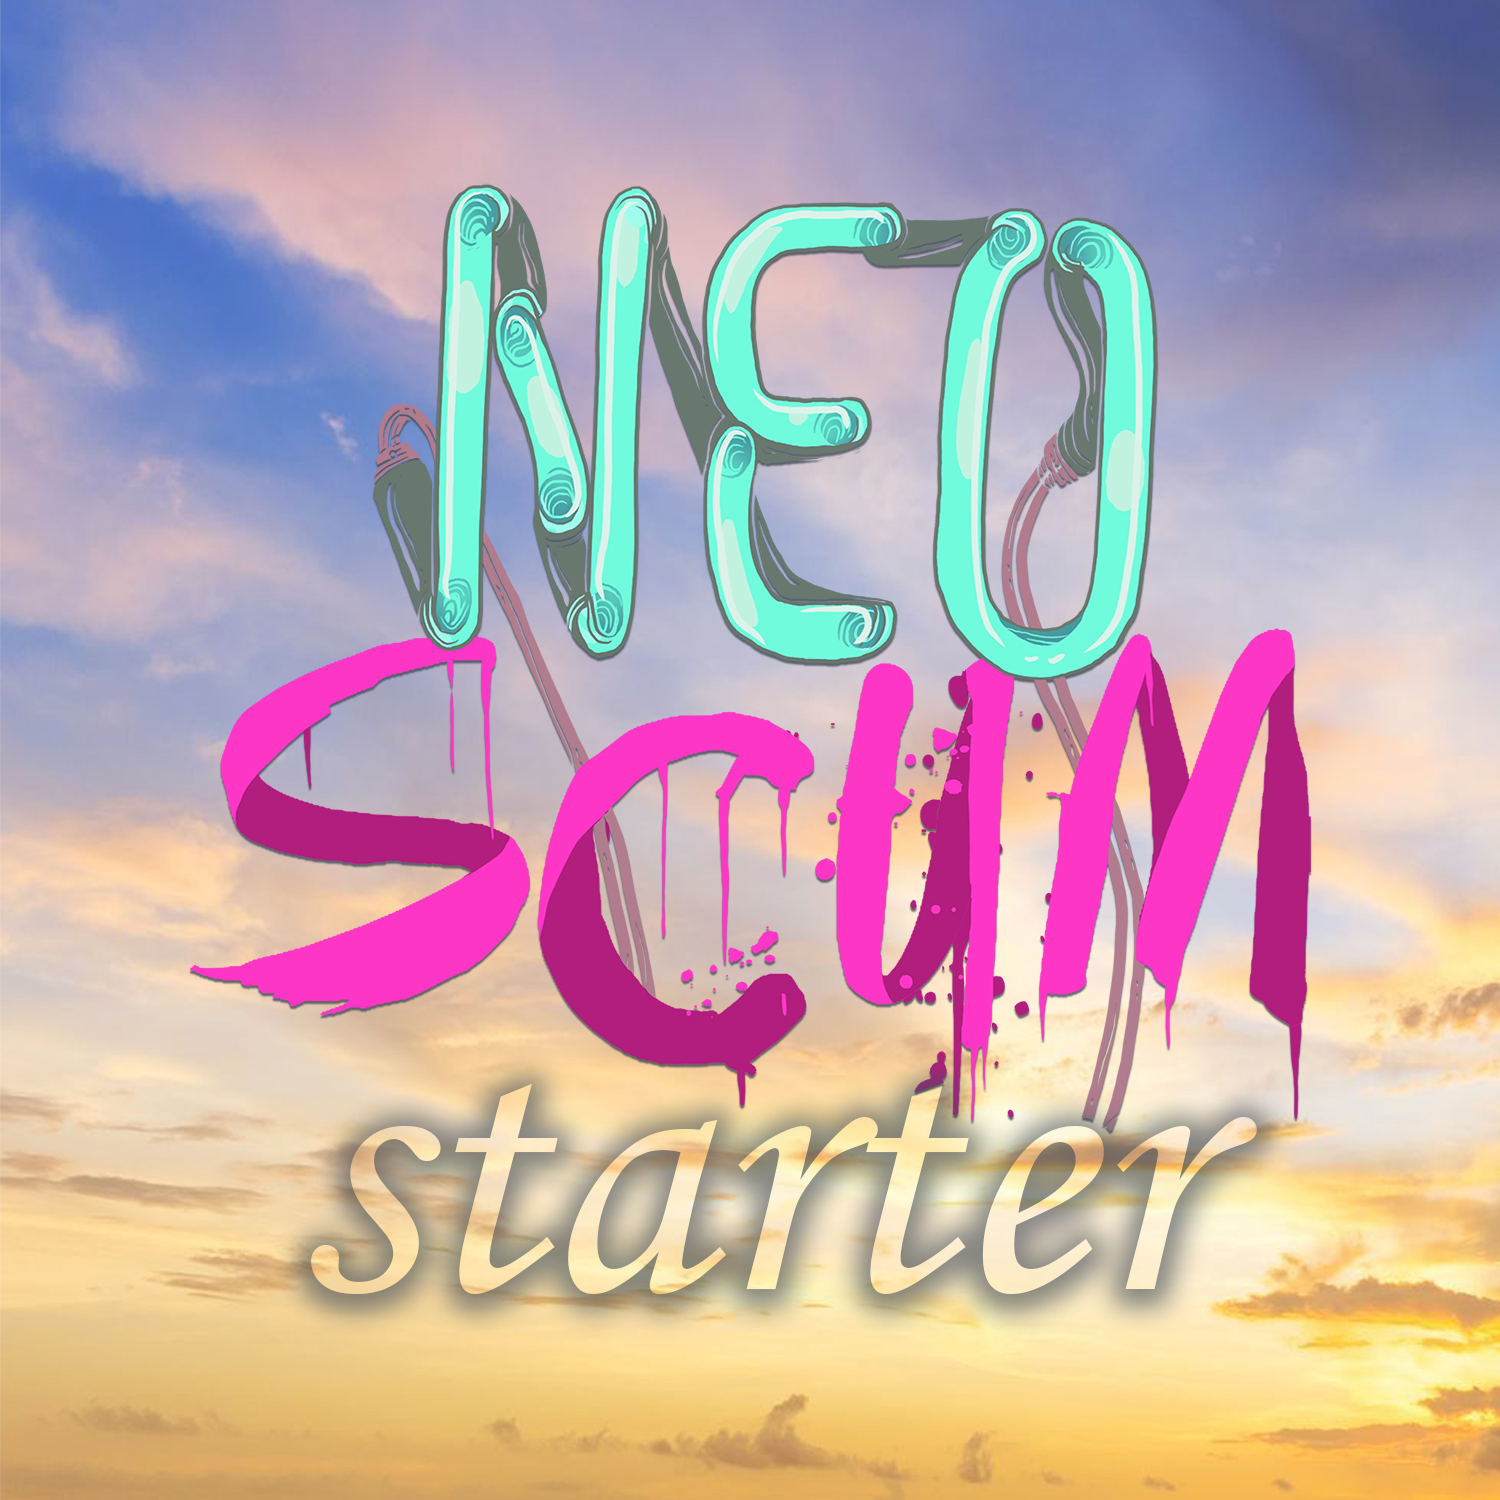 Neoscum starter logo by casey toney and  will kirkby